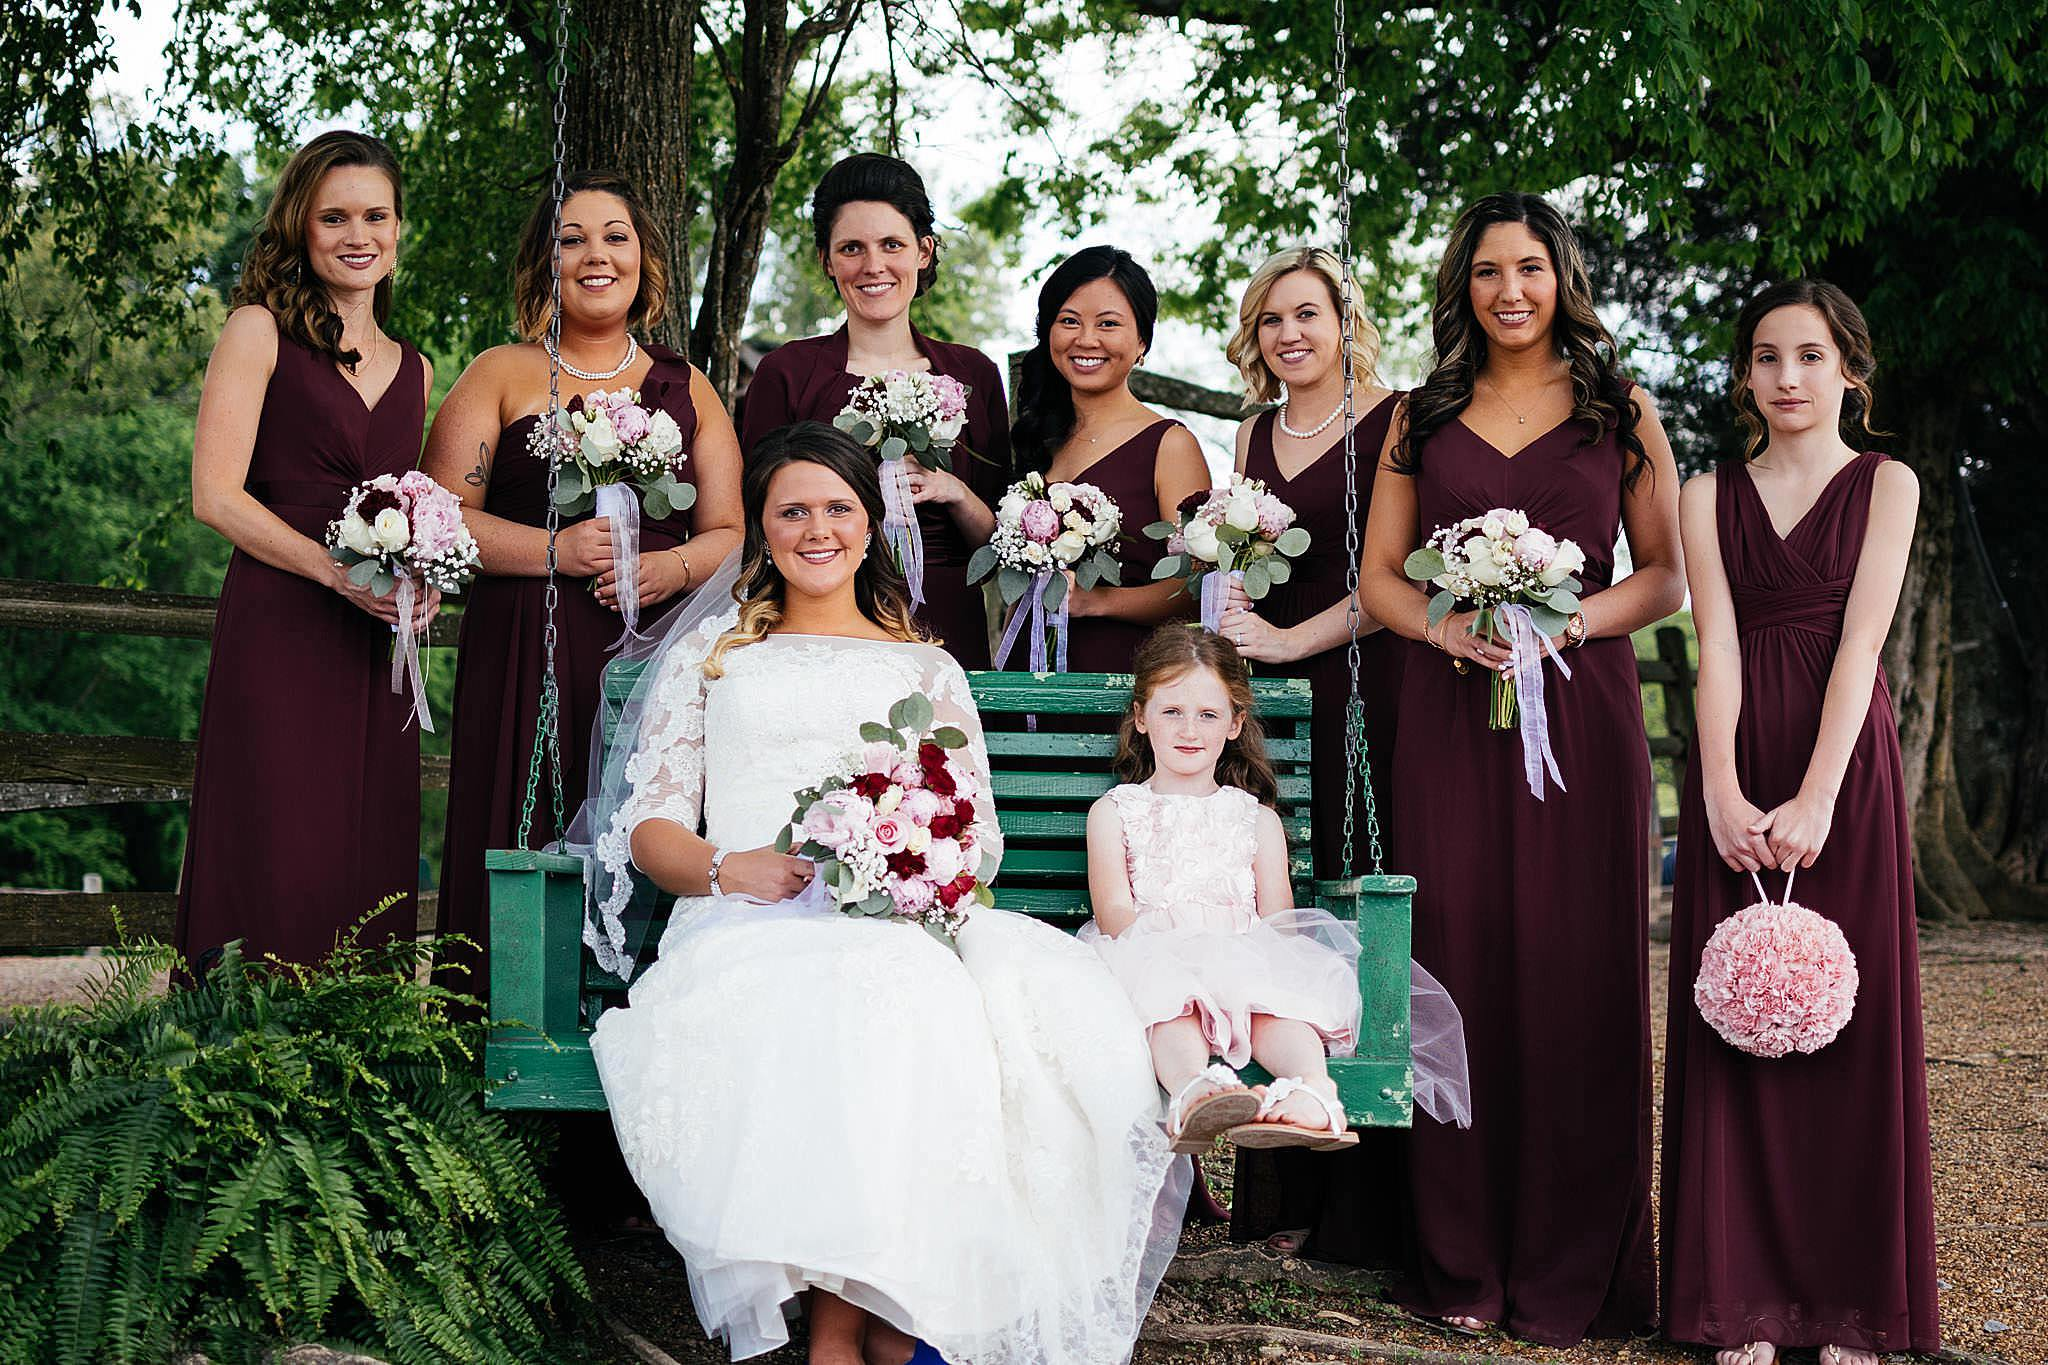 3.. Billman Wedding - Girls Portraits 1 - FB.jpg